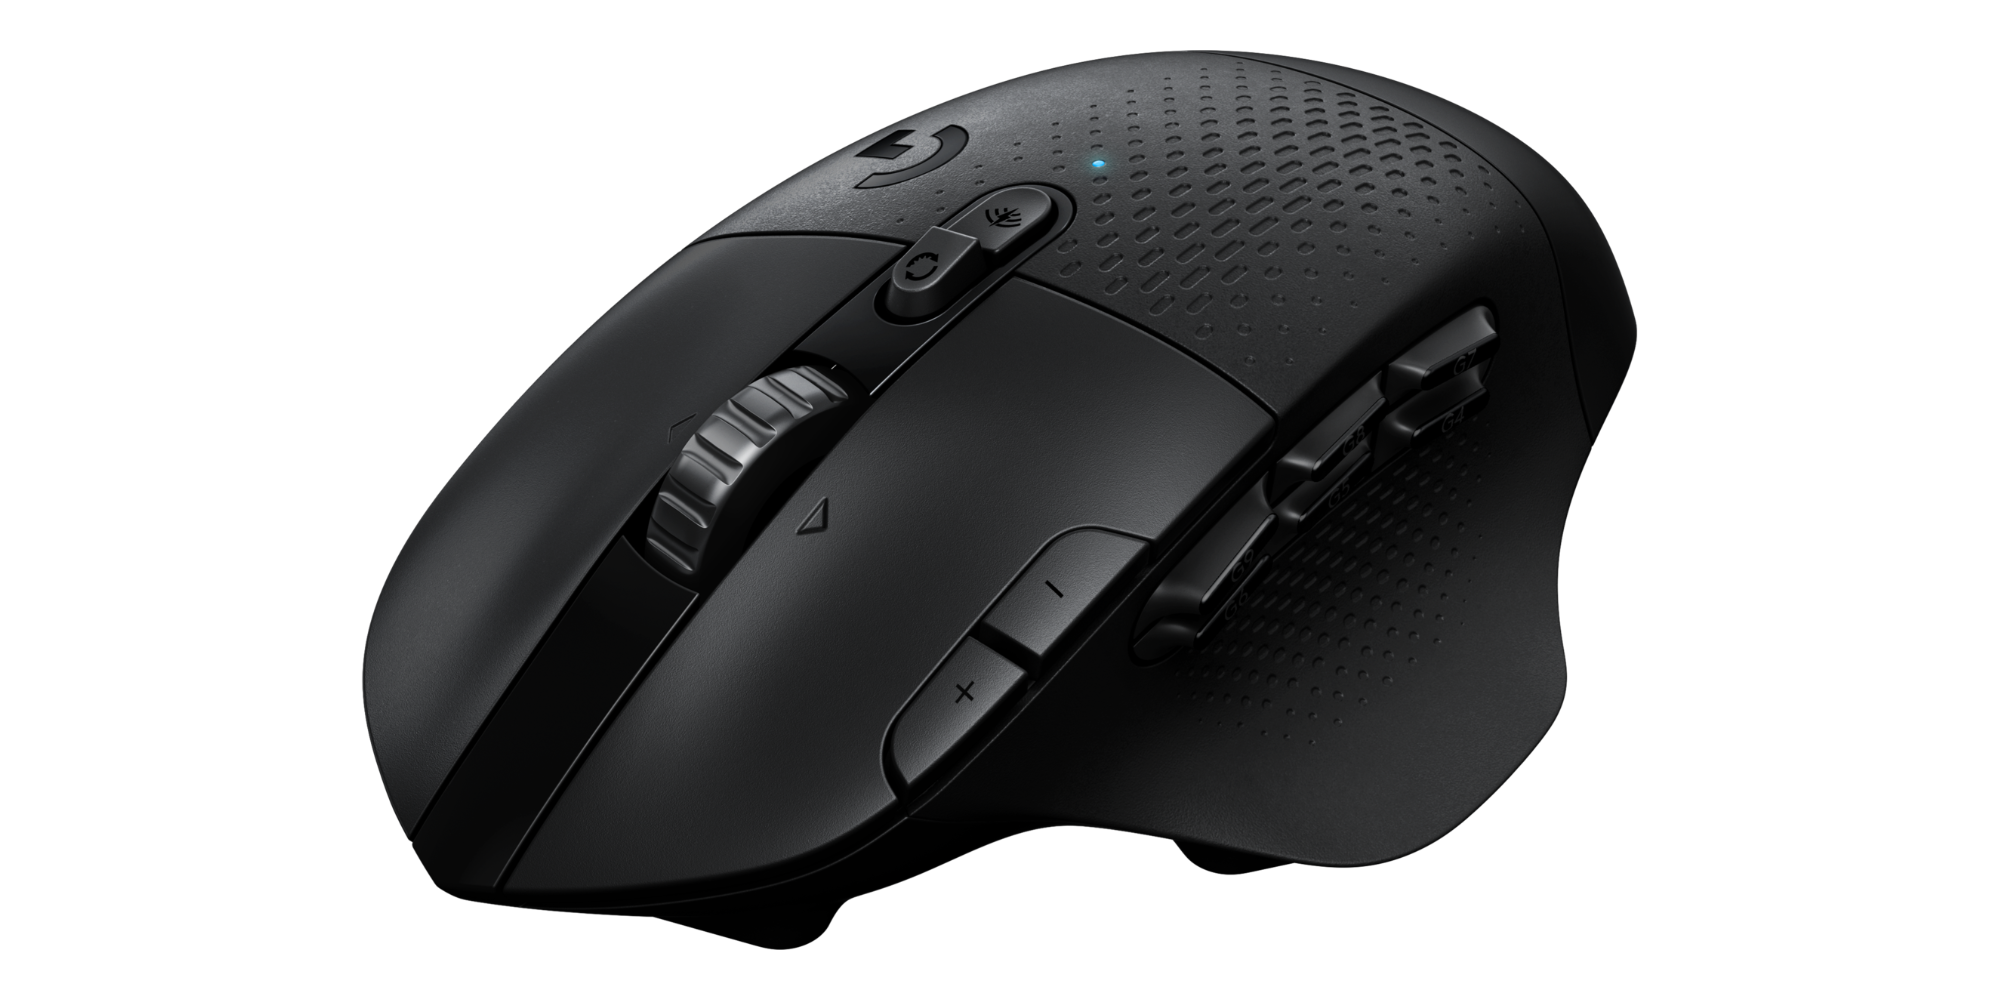 Logitech Lightspeed Mouse sees first price drop at $20 off - 9to5Toys